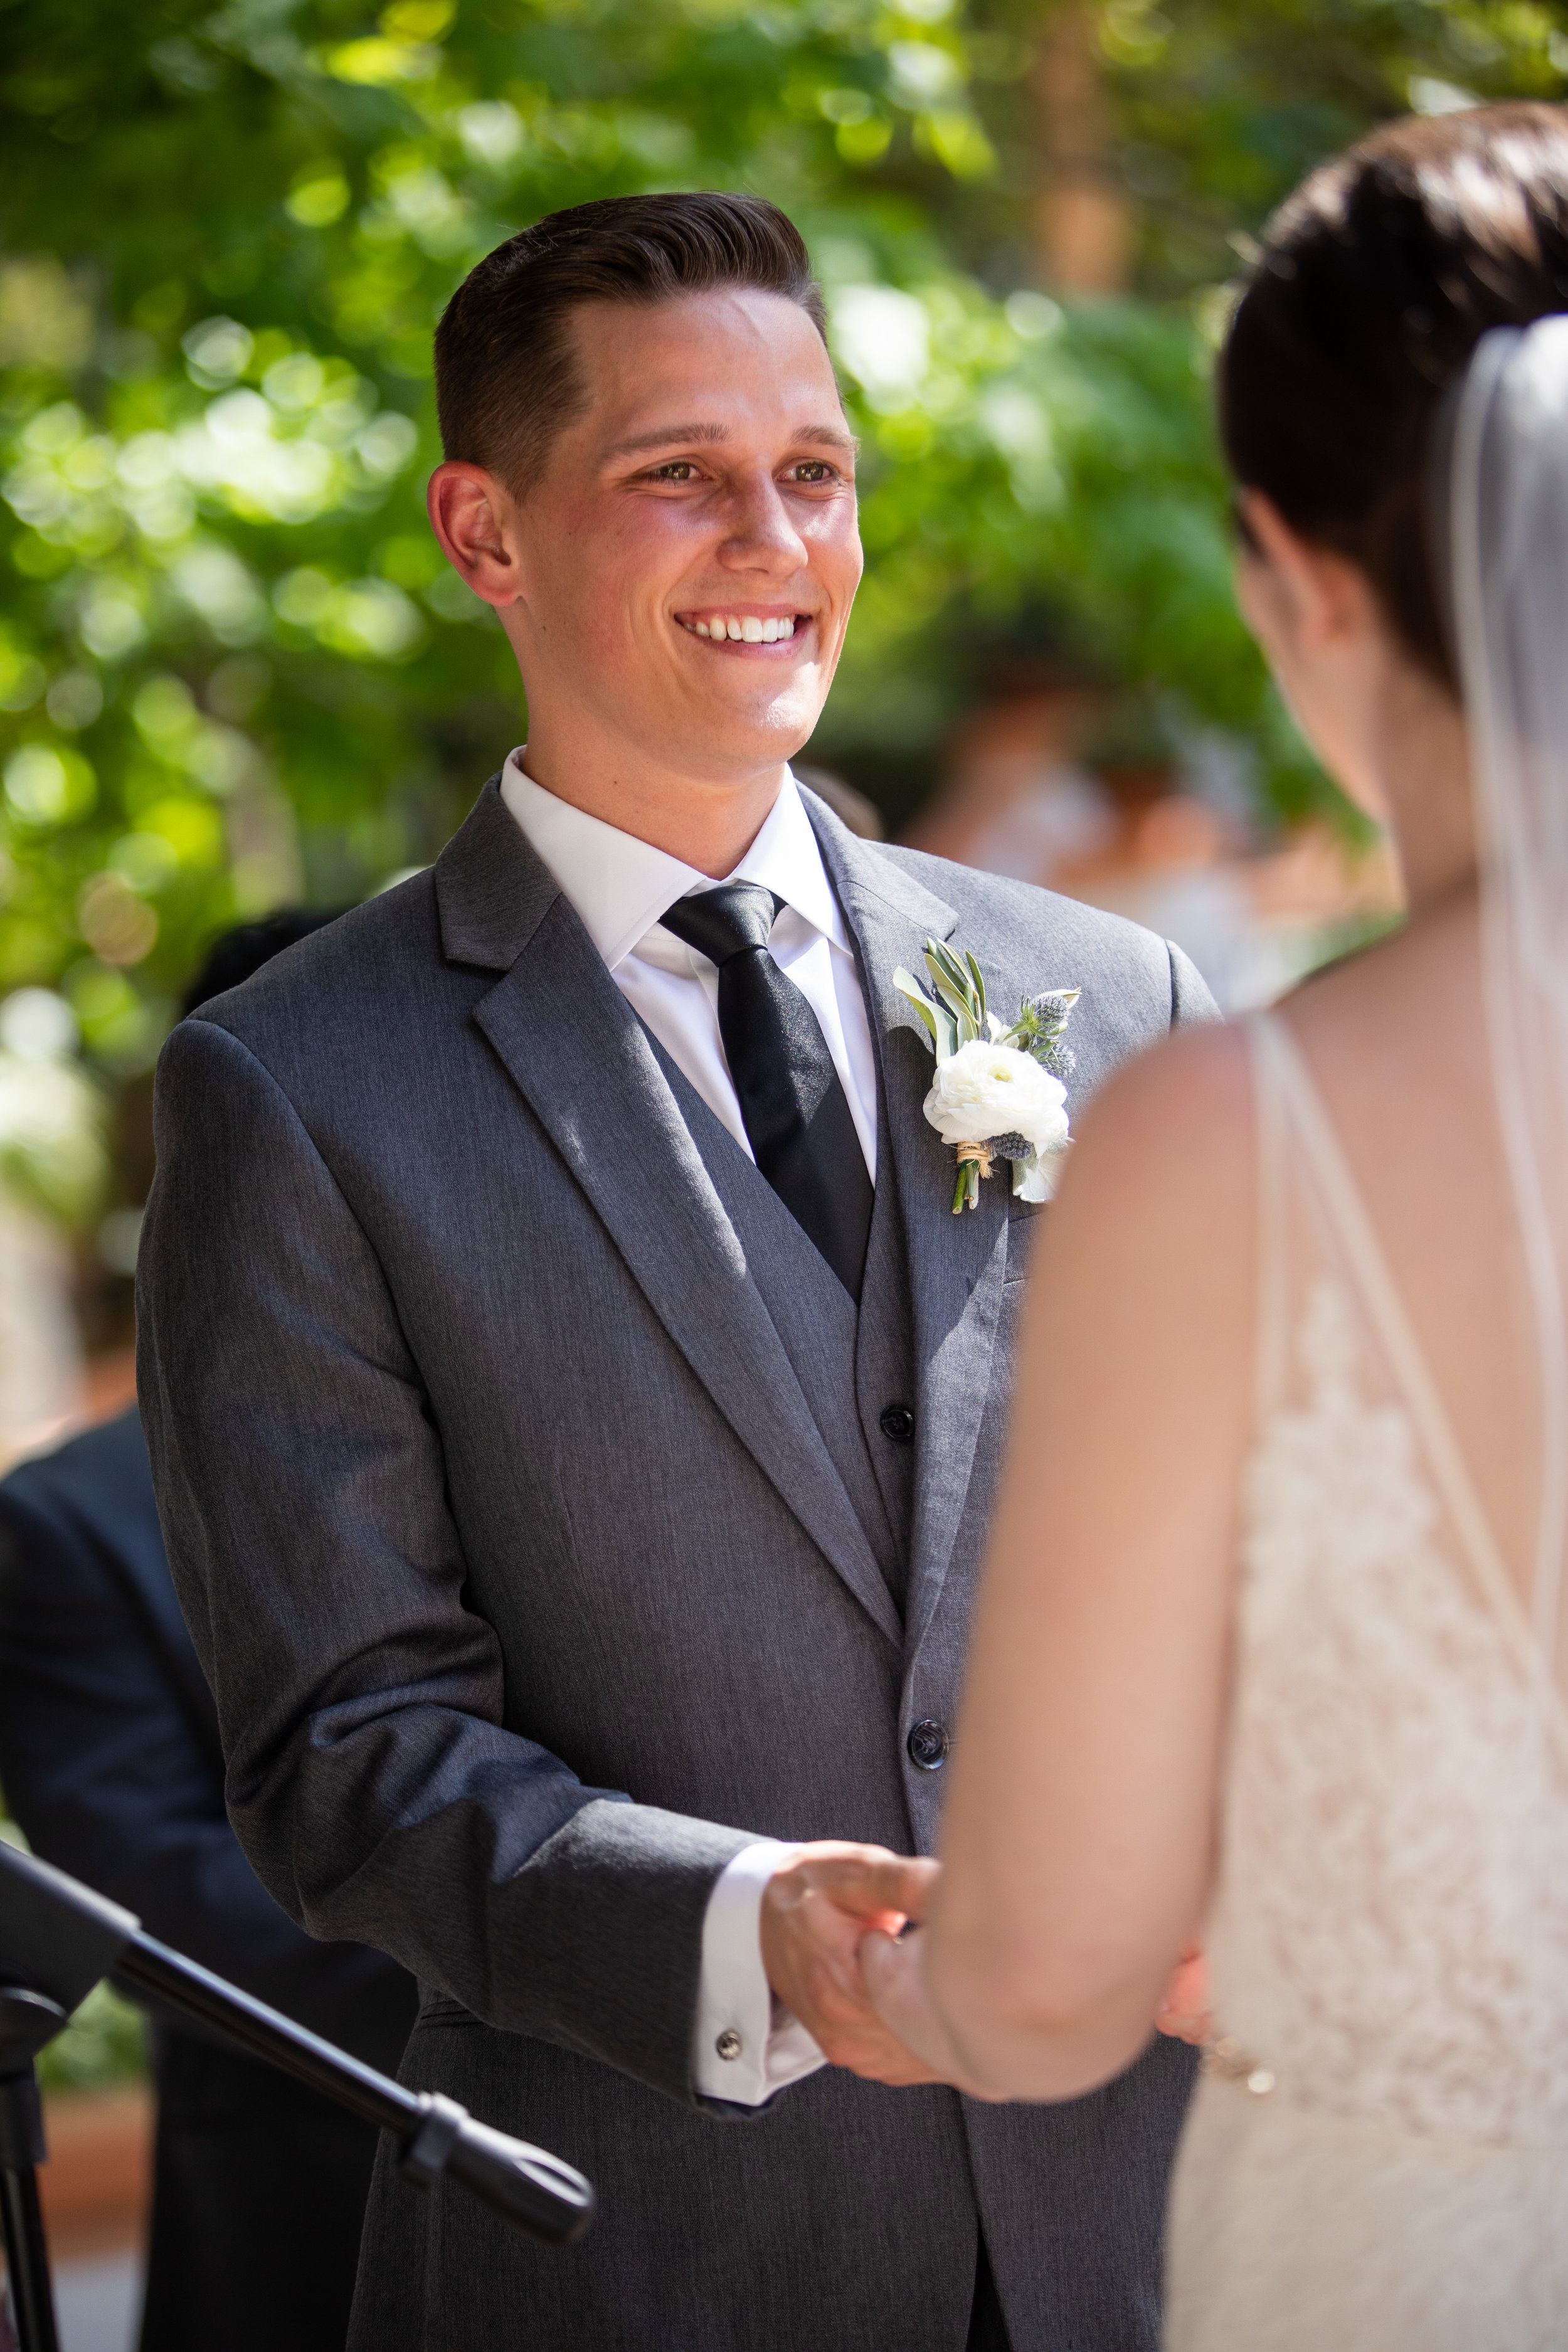 Taylor and Brenton - Ceremony-129.JPG